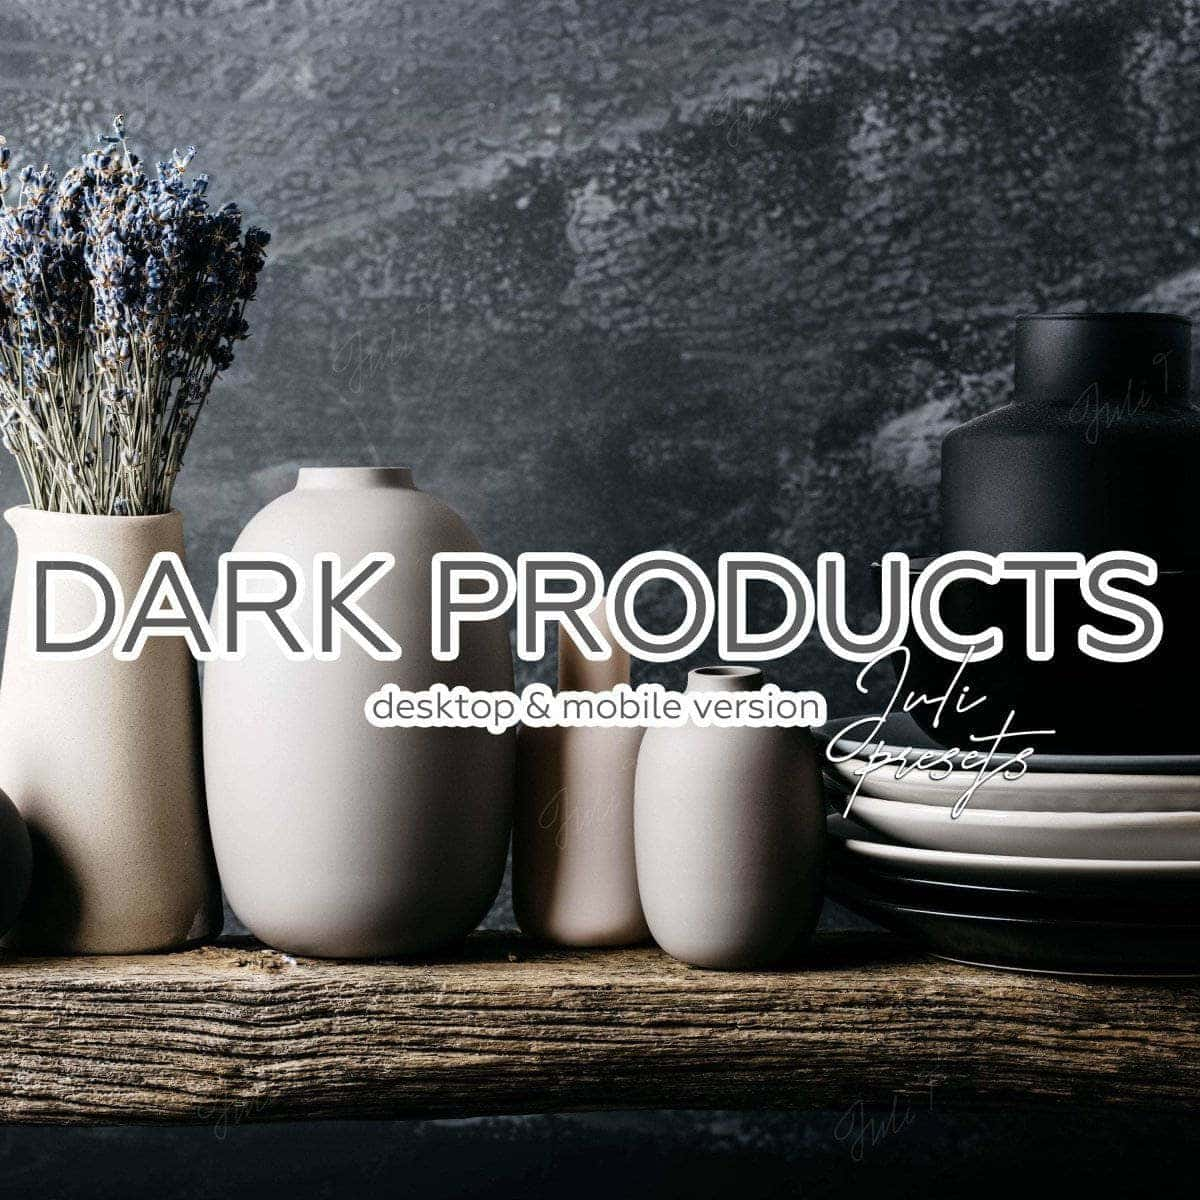 DARK PRODUCRS - 4 Desktop Lightroom Presets - presetbank